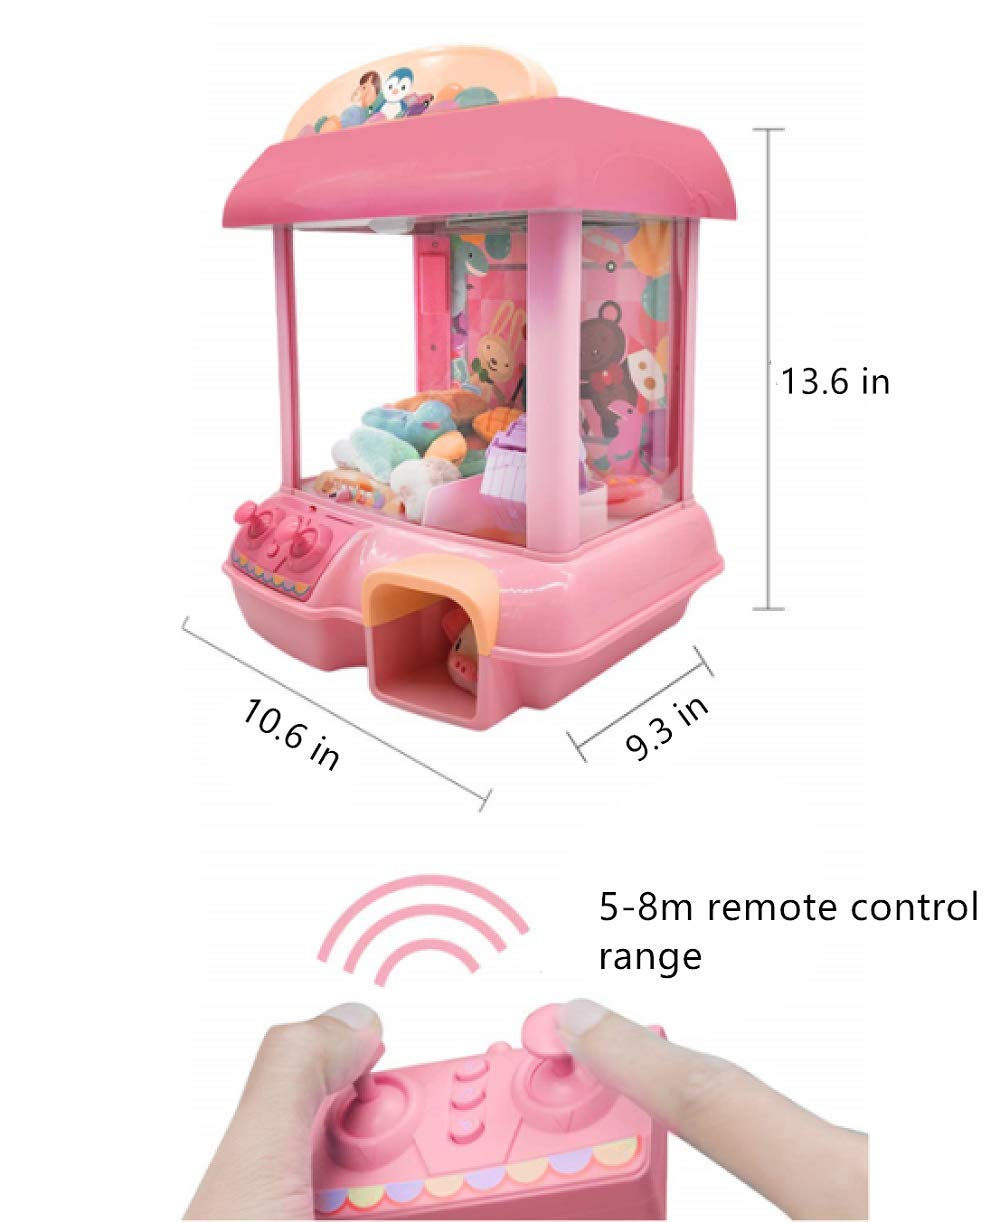 ForBEST Claw Machine Doll Machine with Removable Remote Control, USB Cable, 6 Dolls, Adjustable Sounds and Lights, Best Gift Toy for Kids (Pink) by For BEST (Image #6)